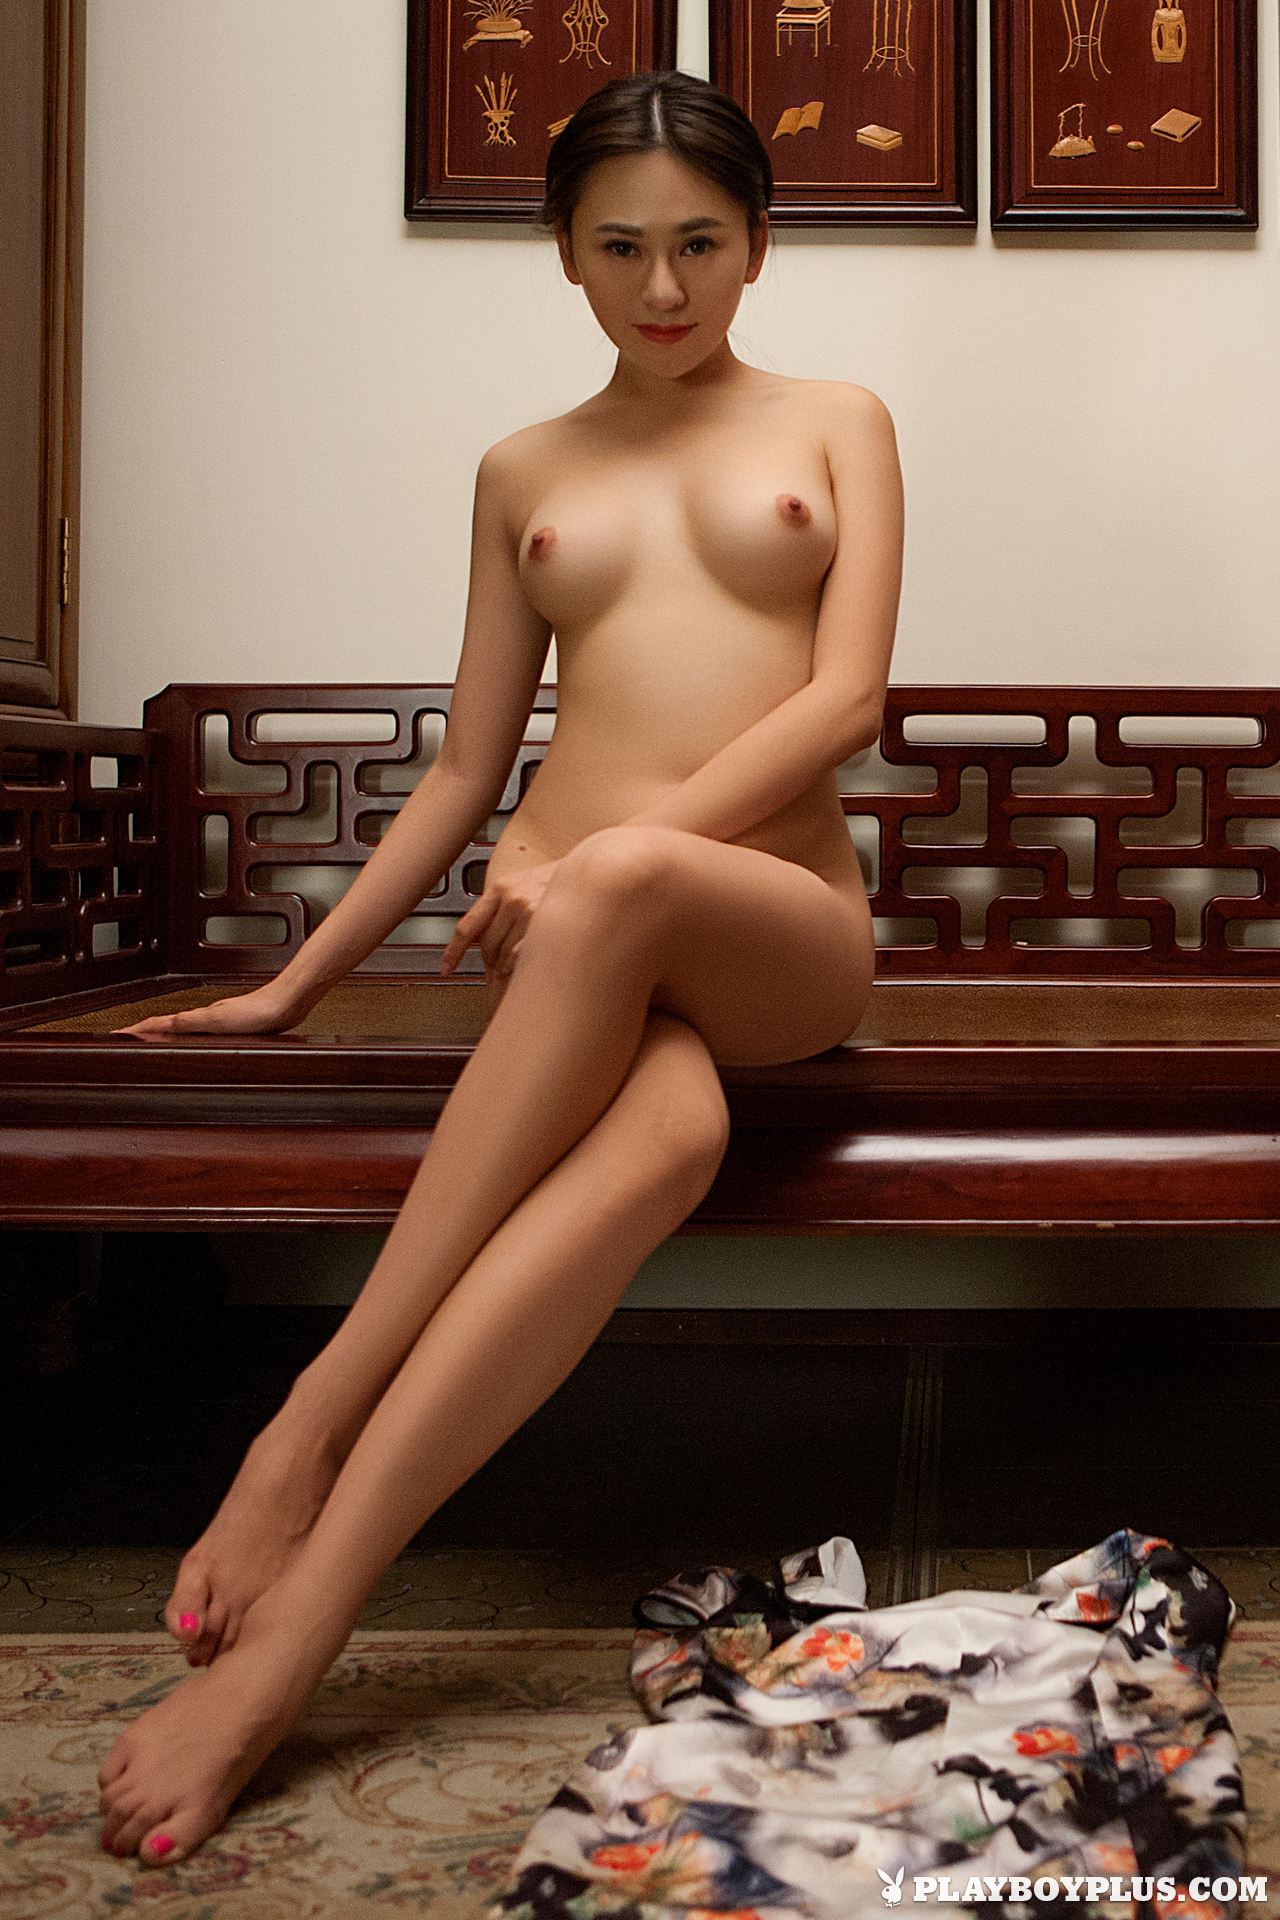 wu-muxi-nude-chinese-girl-short-dress-playboy-12